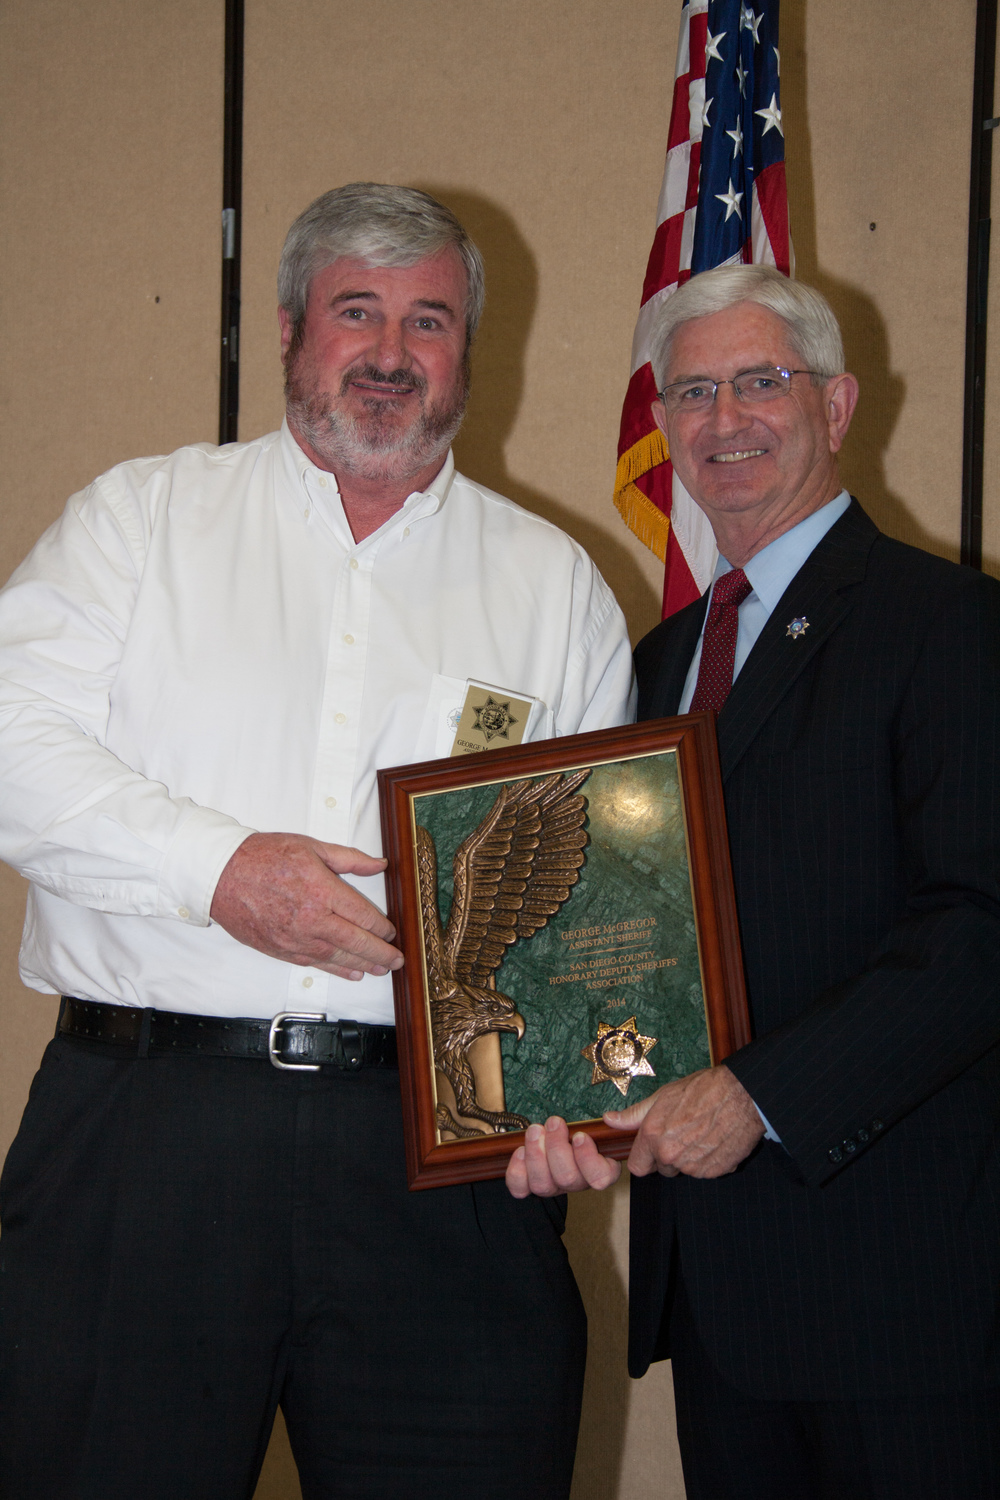 George McGregor Upgrades to the esteemed position of HDSA Assistant Sheriff as presented by Sheriff Bill Gore